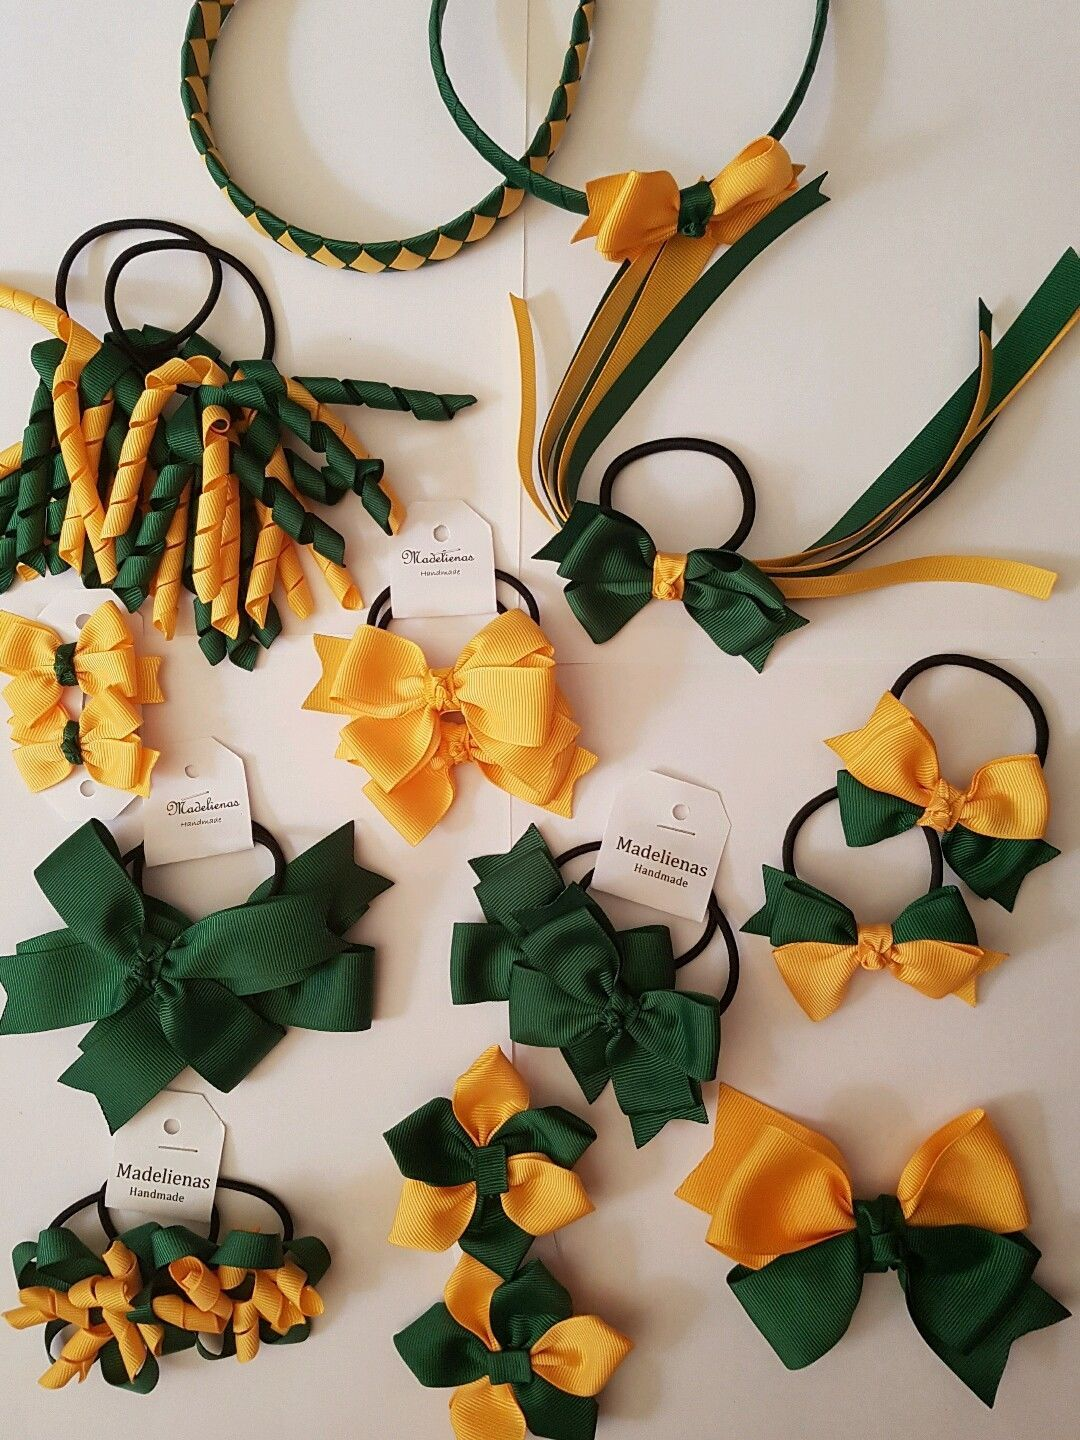 Madelienas Handmade School Hair Accessories set BOTTLE GREEN & YELLOW-GOLD | eBay